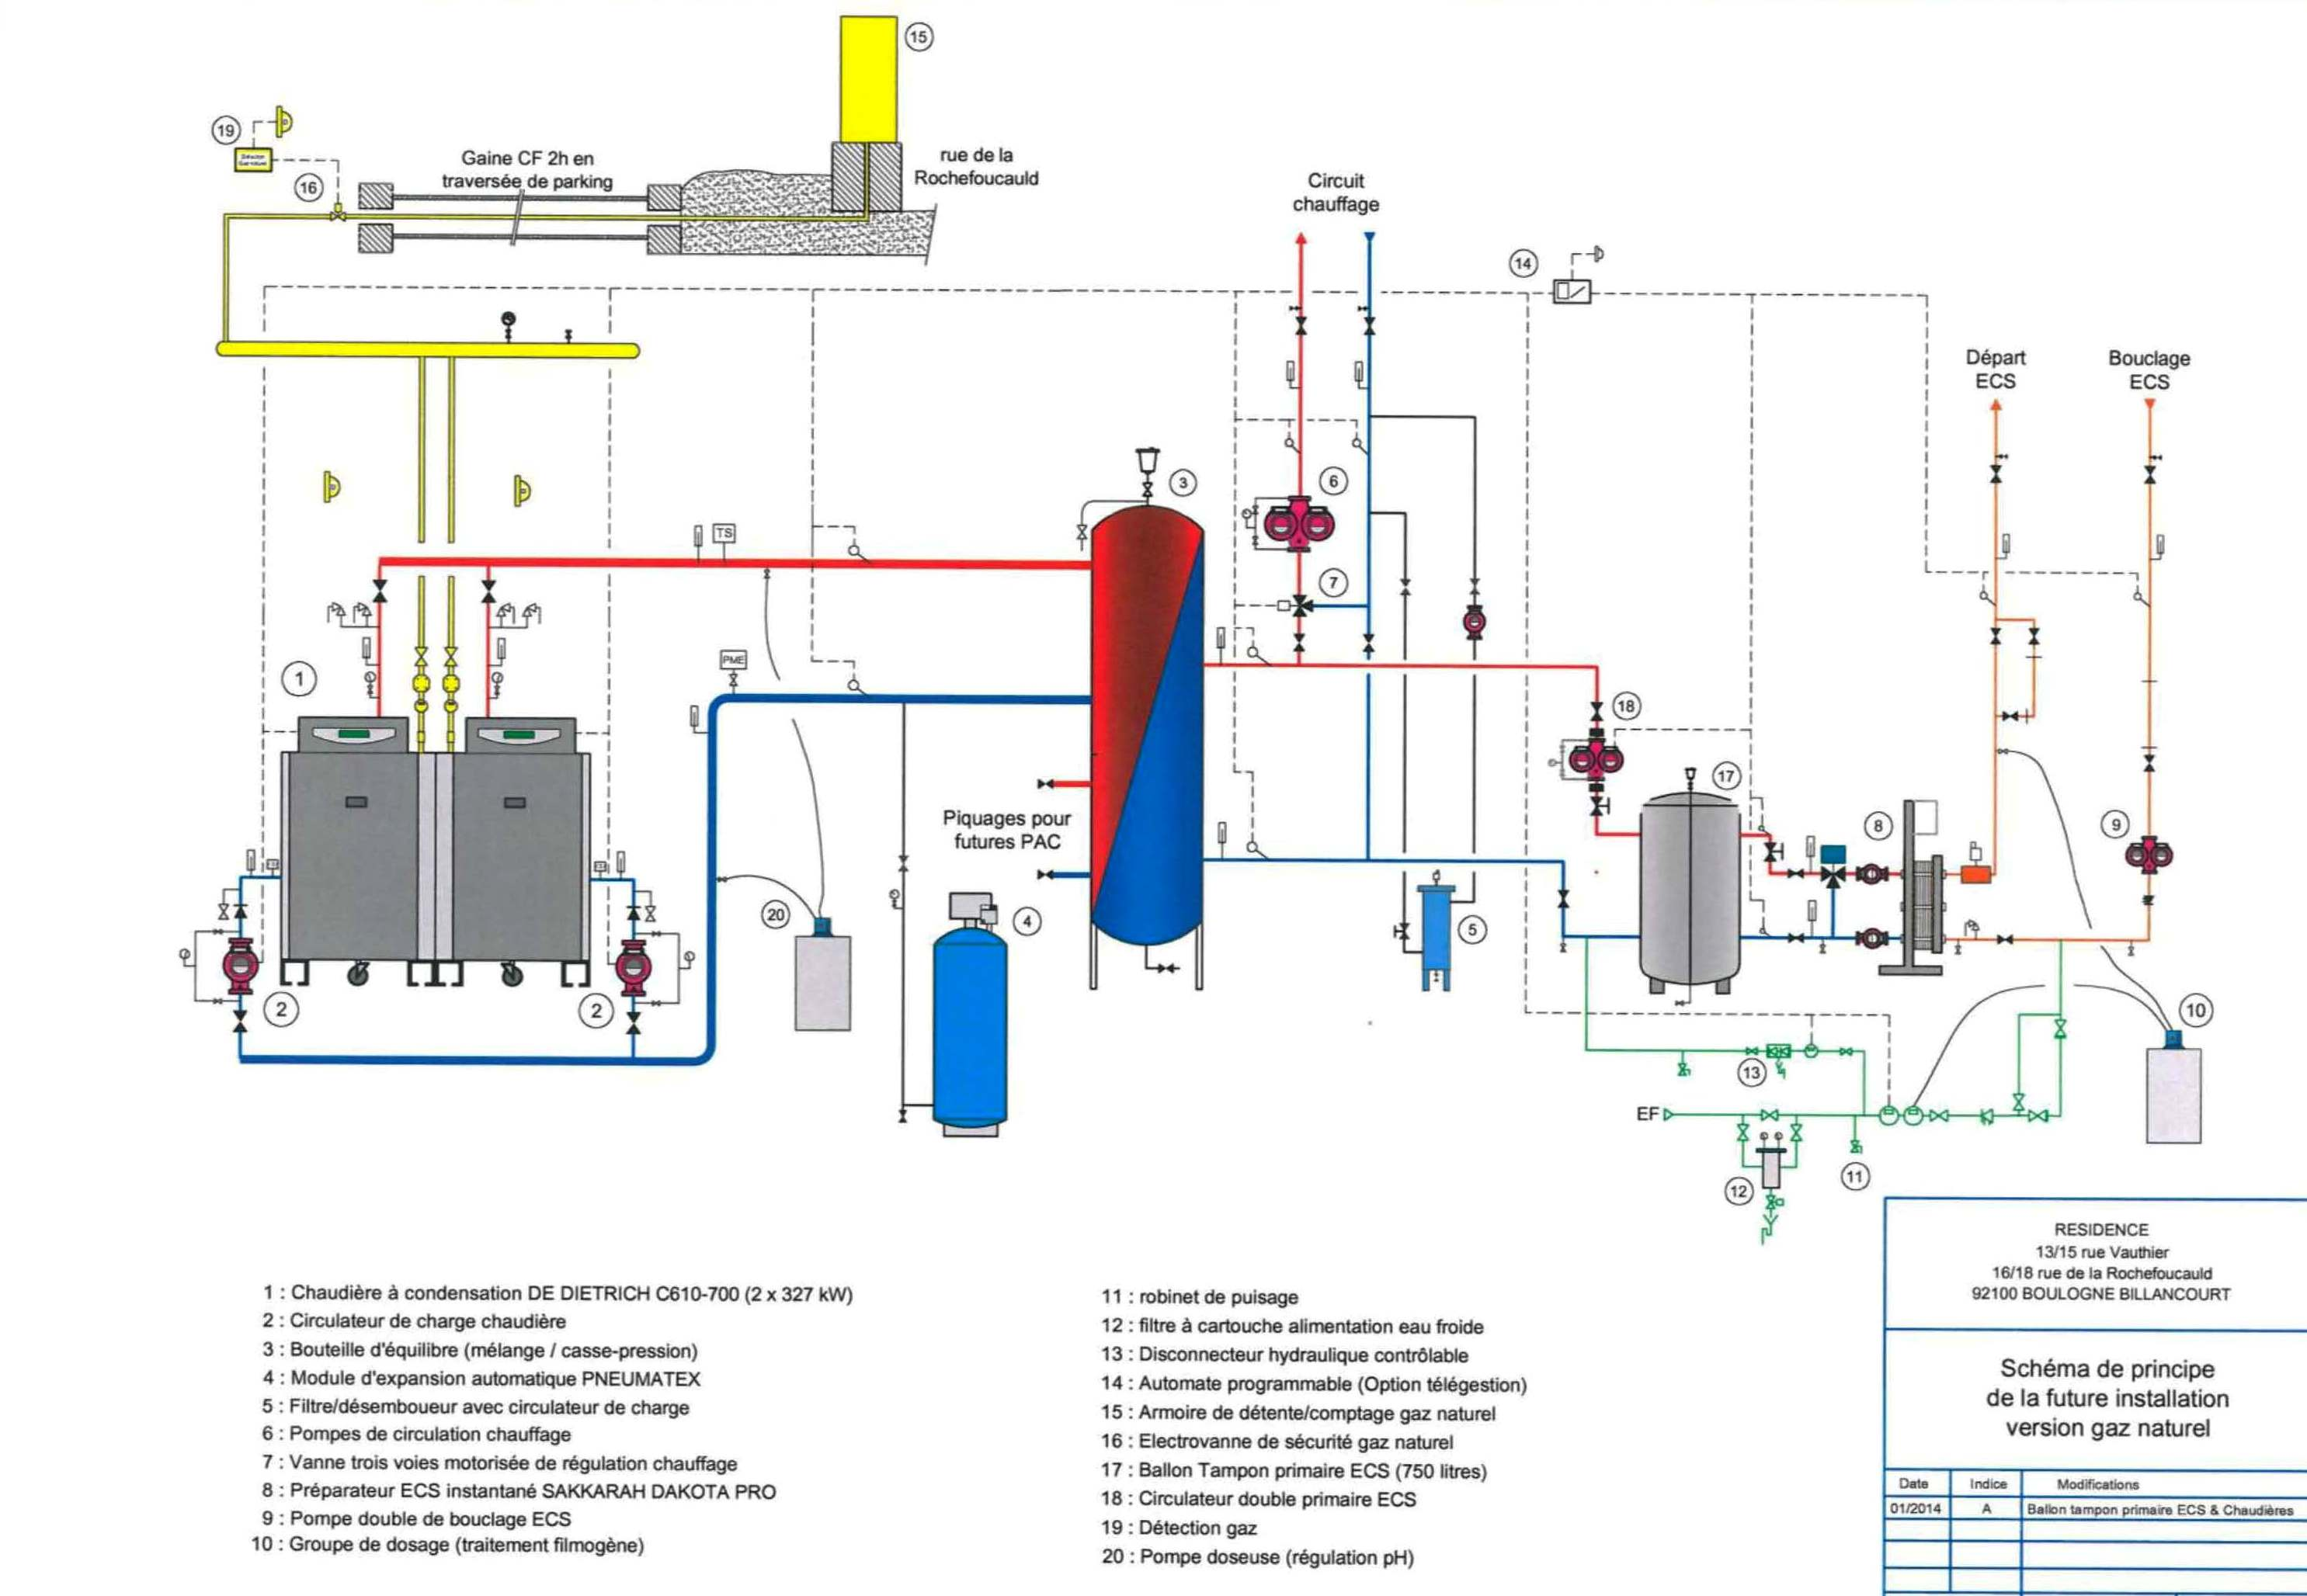 Index Of Riv Ener Complements Analyse3 Fichiers Circuit Diagram Xml Image001